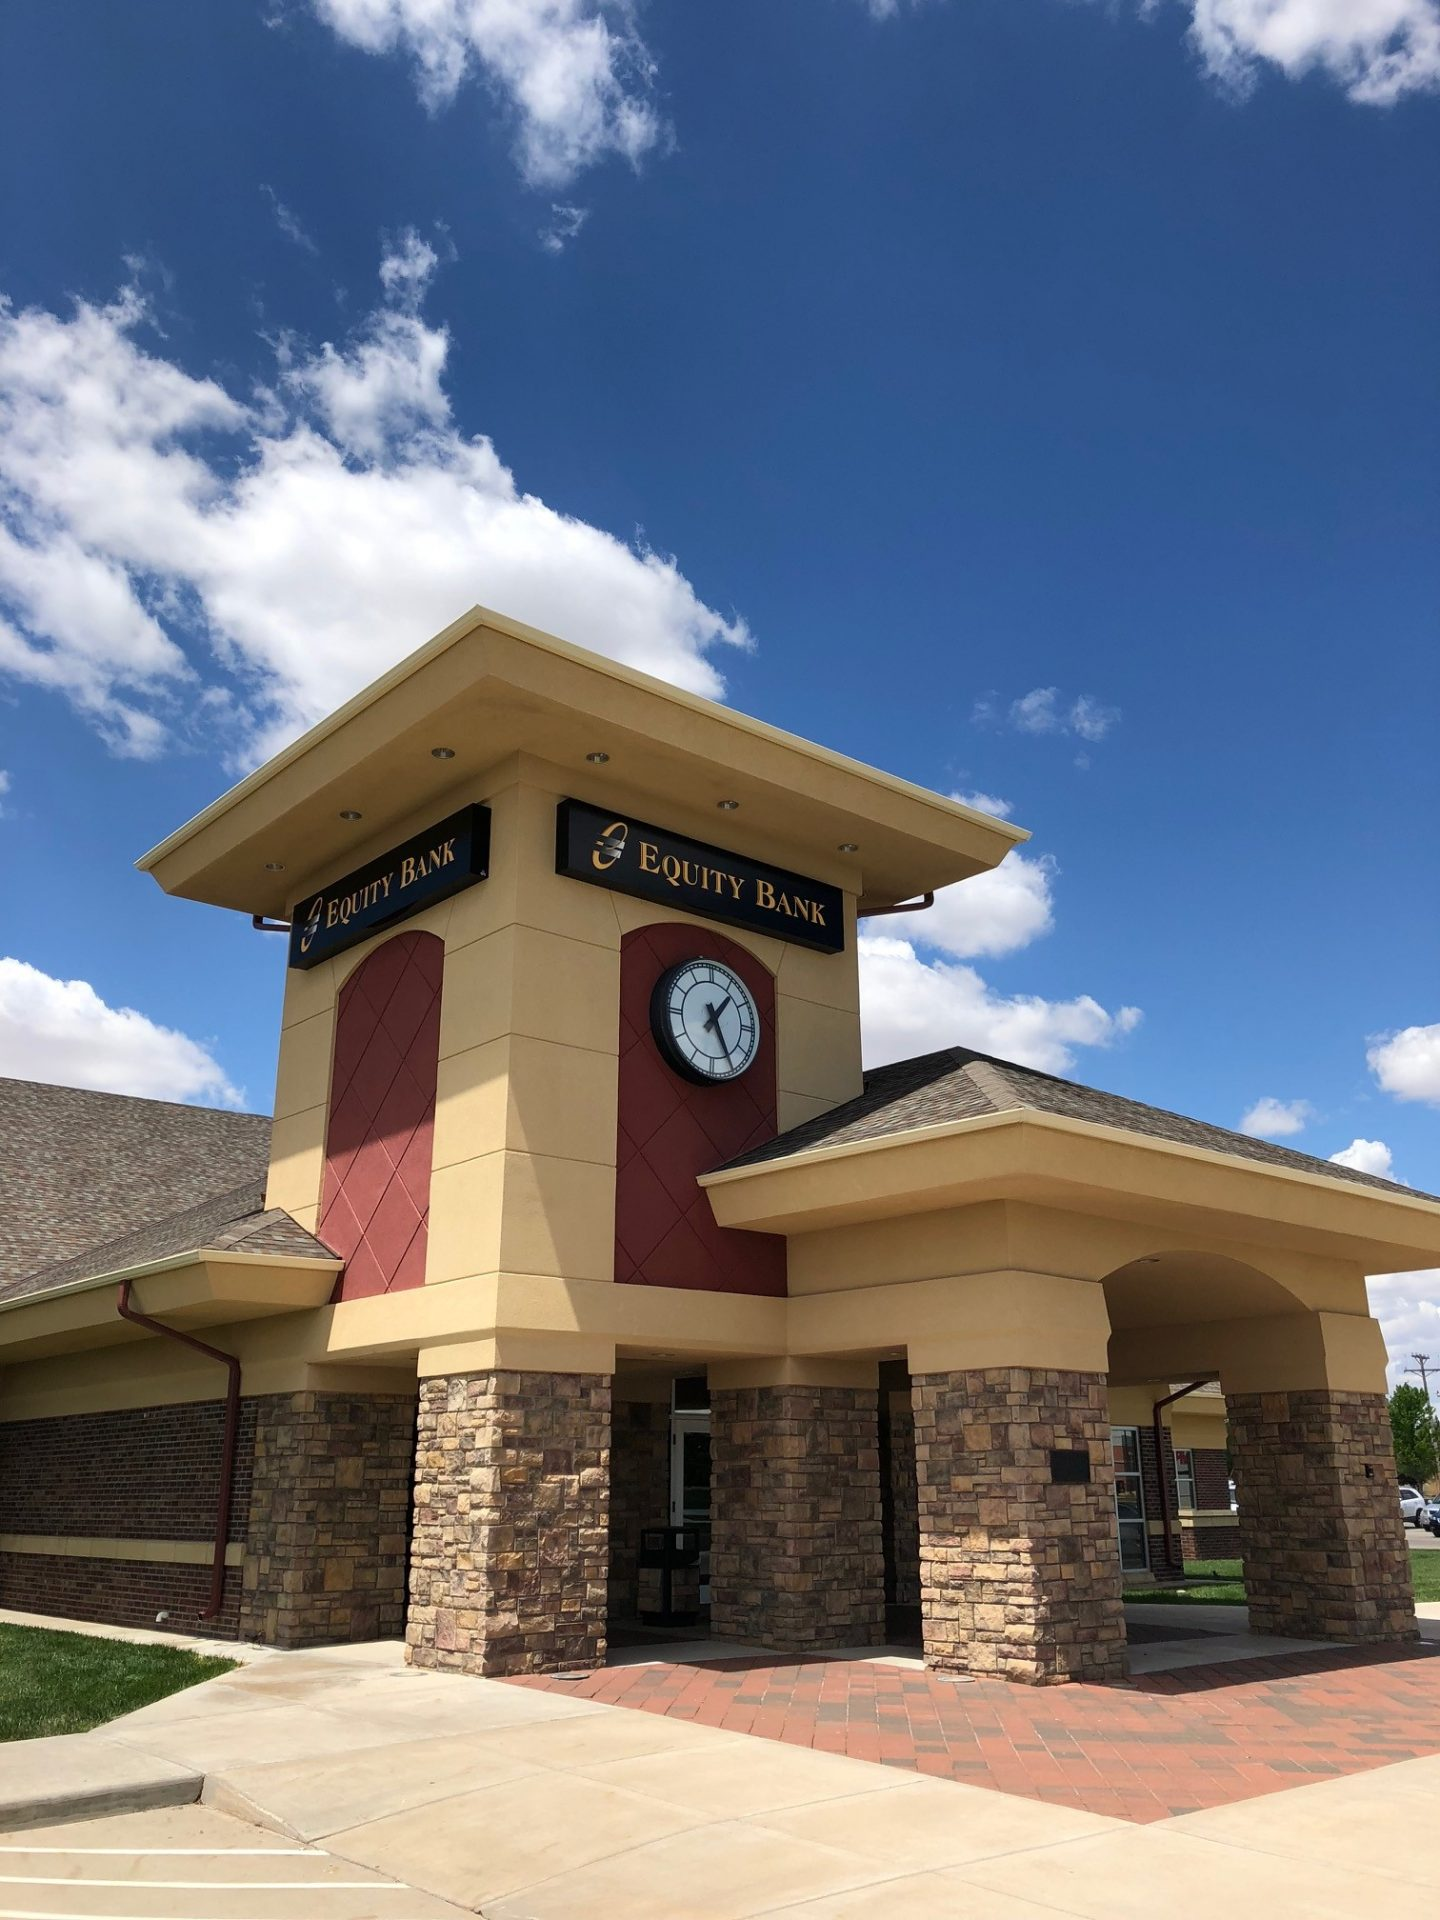 Equity Bank Liberal Lincoln Avenue branch exterior.